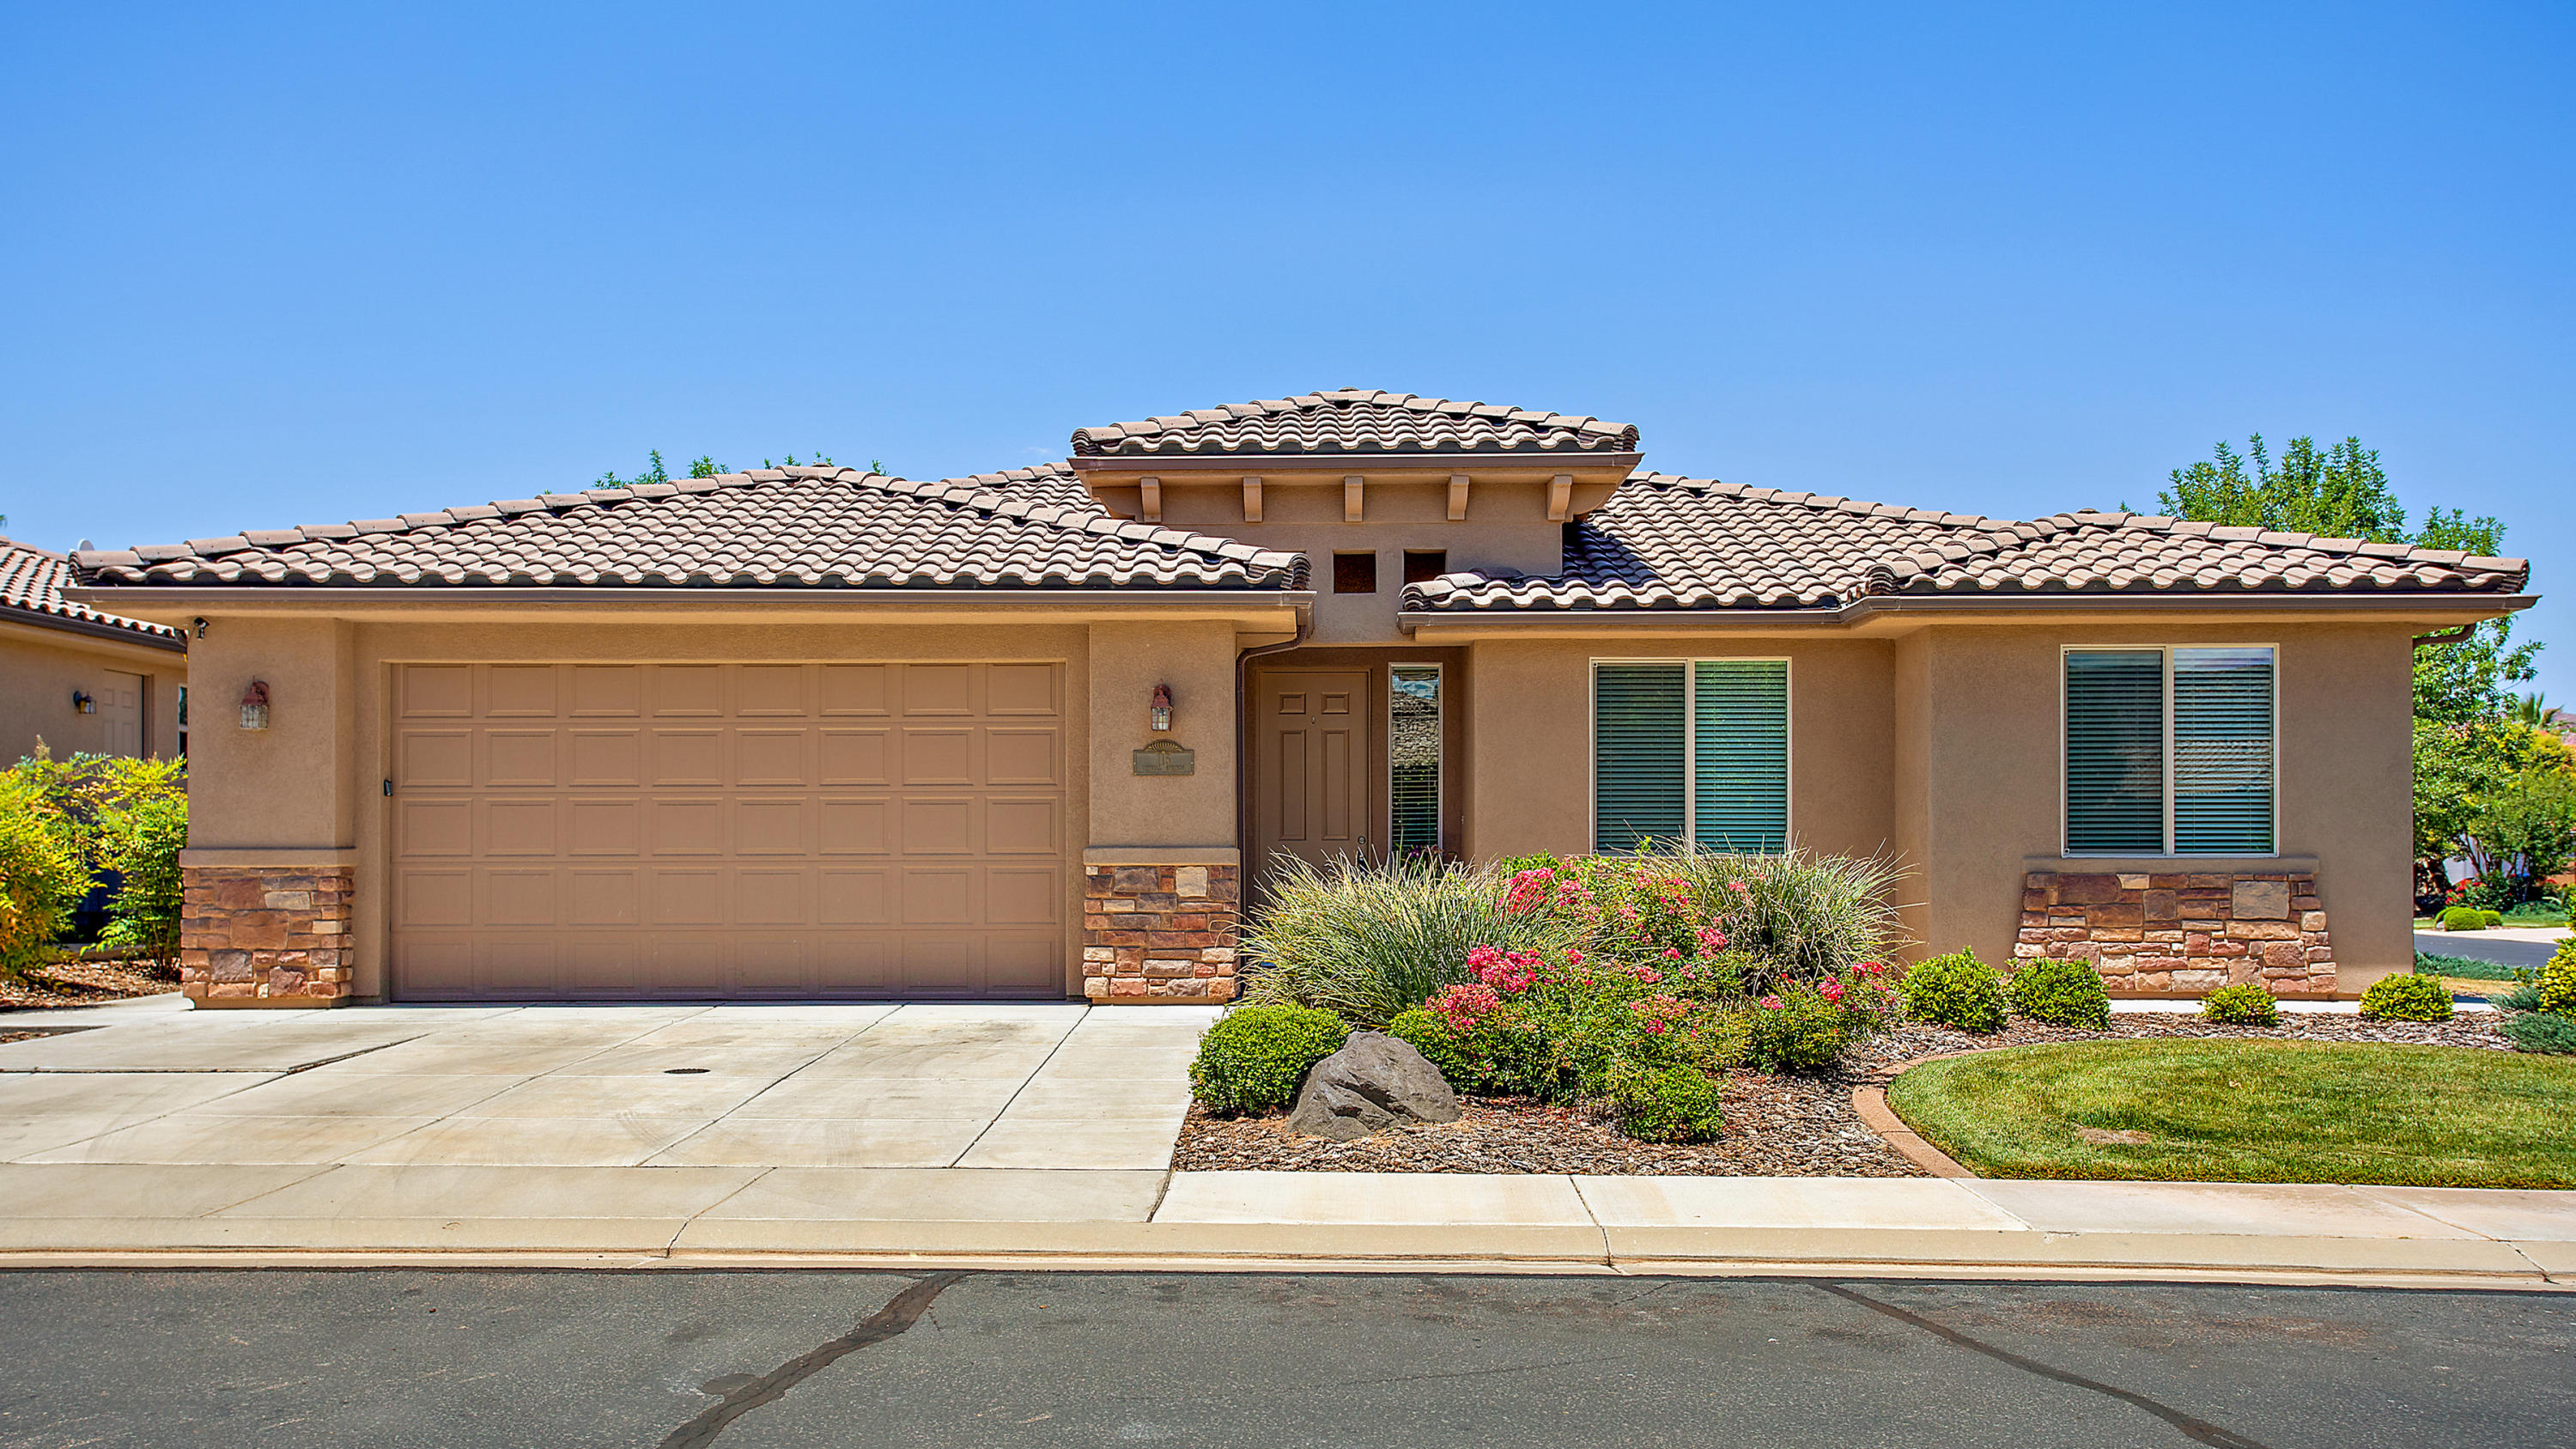 145 S Crystal Lakes Unit 115, St George Ut 84770